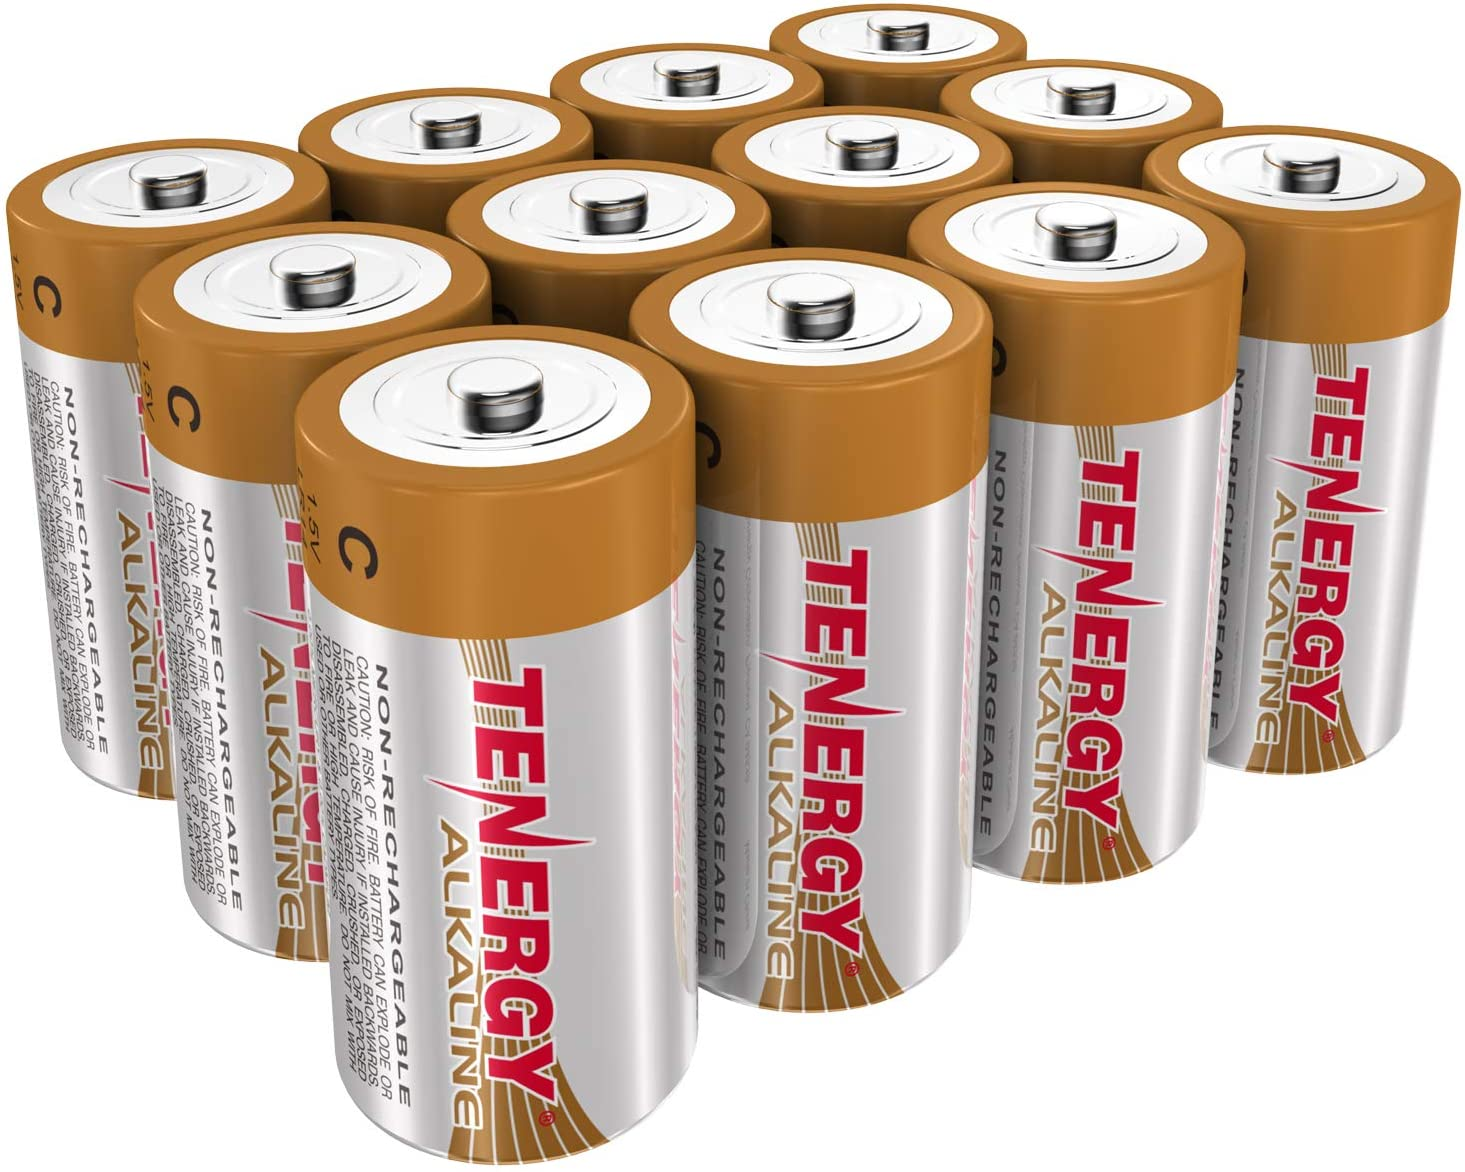 24-Pack Toys /& Electronic Devices Replacement C Cell Batteries Tenergy 1.5V C Alkaline LR14 Battery High Performance C Non-Rechargeable Batteries for Clocks Remotes